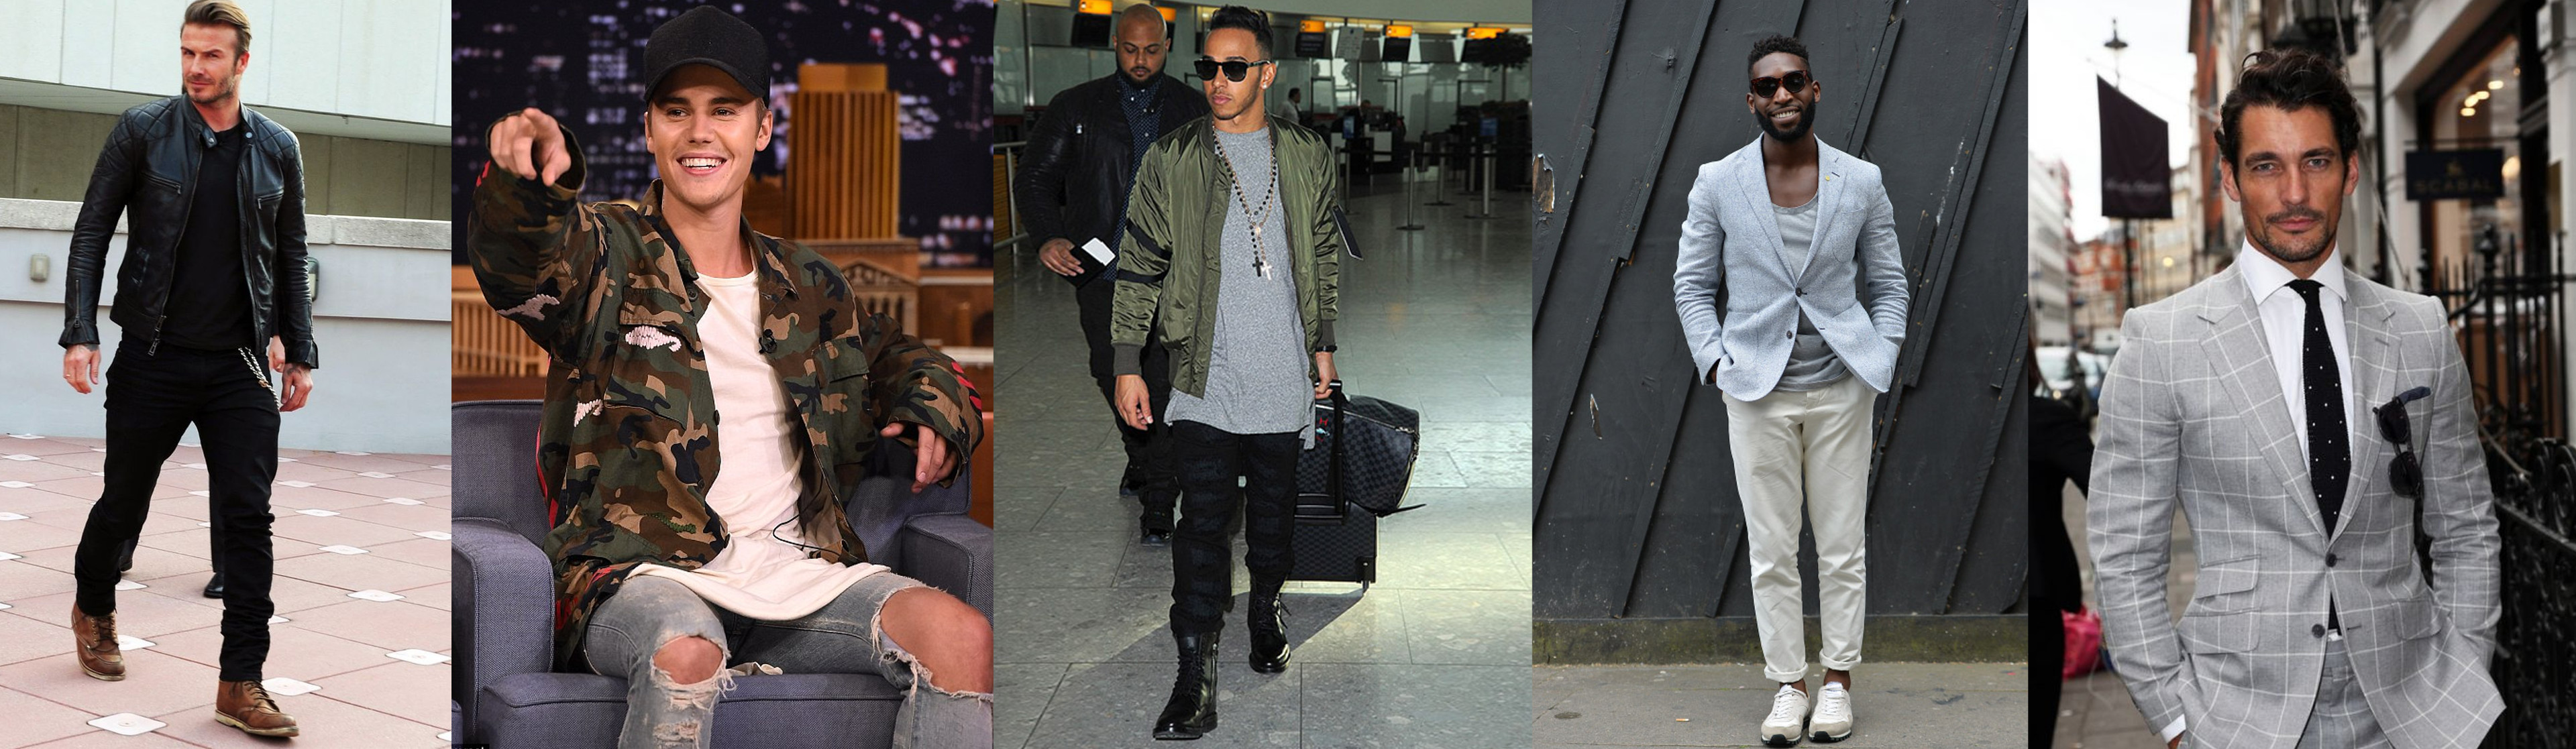 Style Guide: Dress Like Your Favourite Celebrity